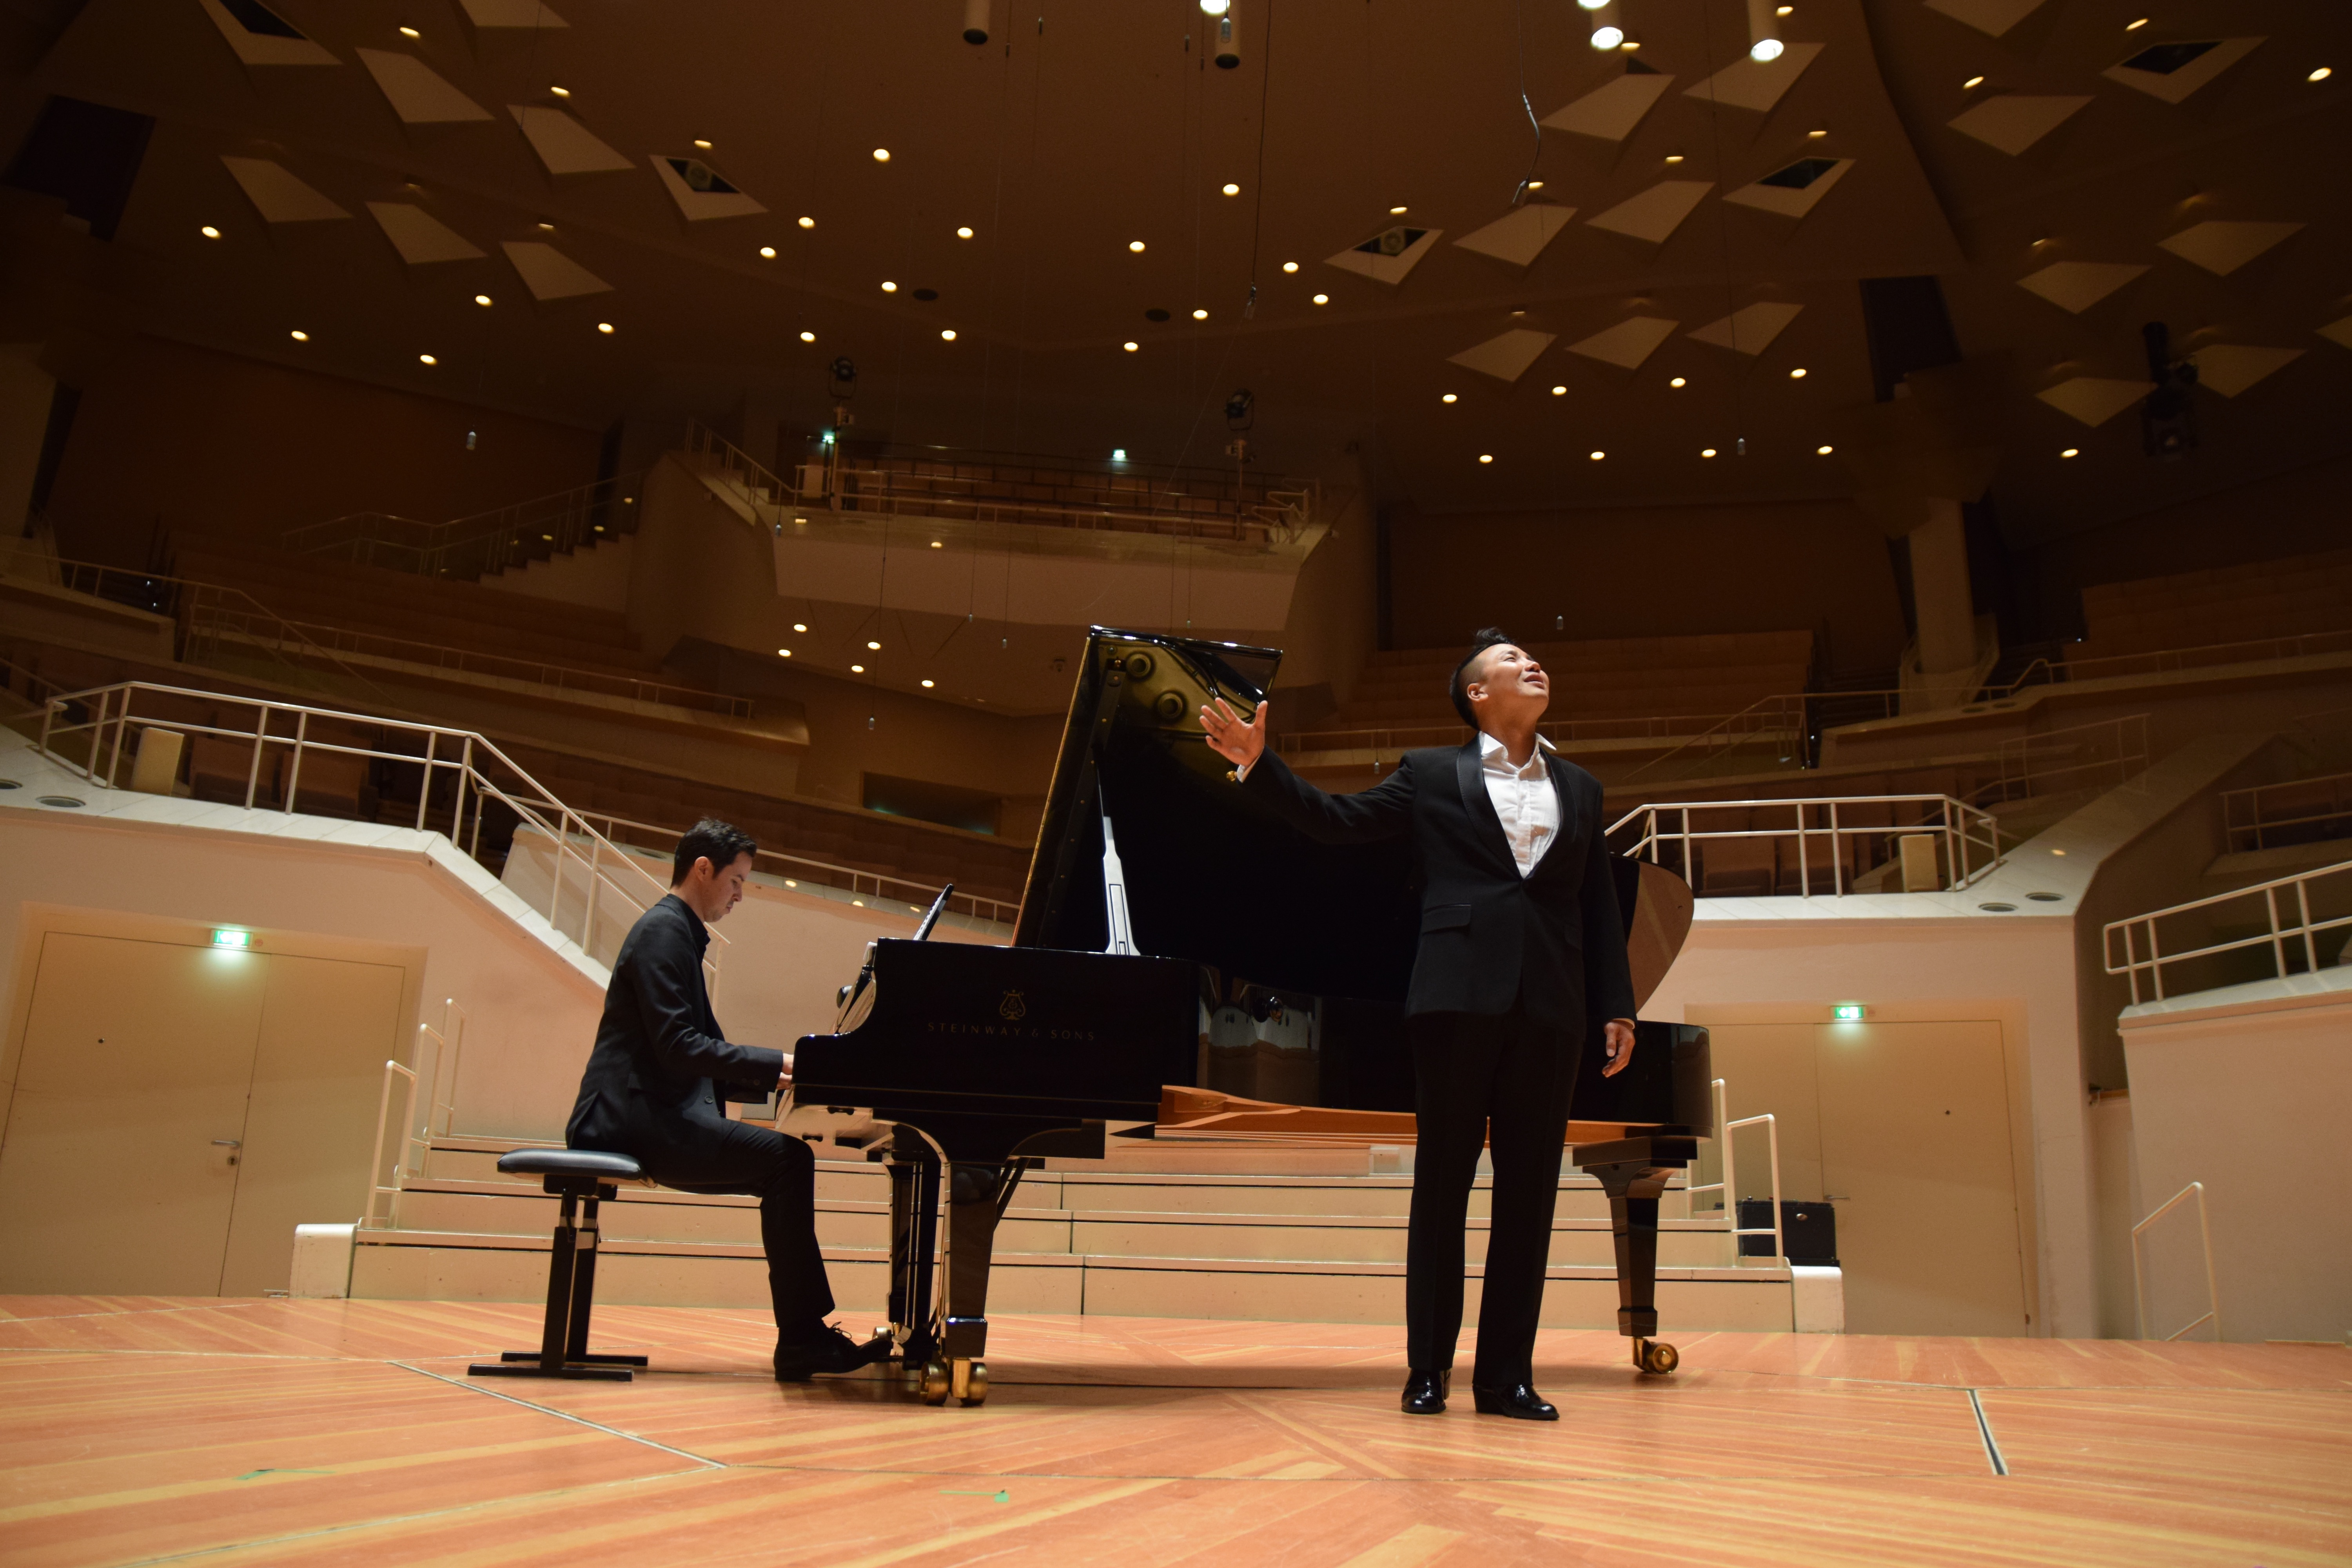 berliner music competition 53